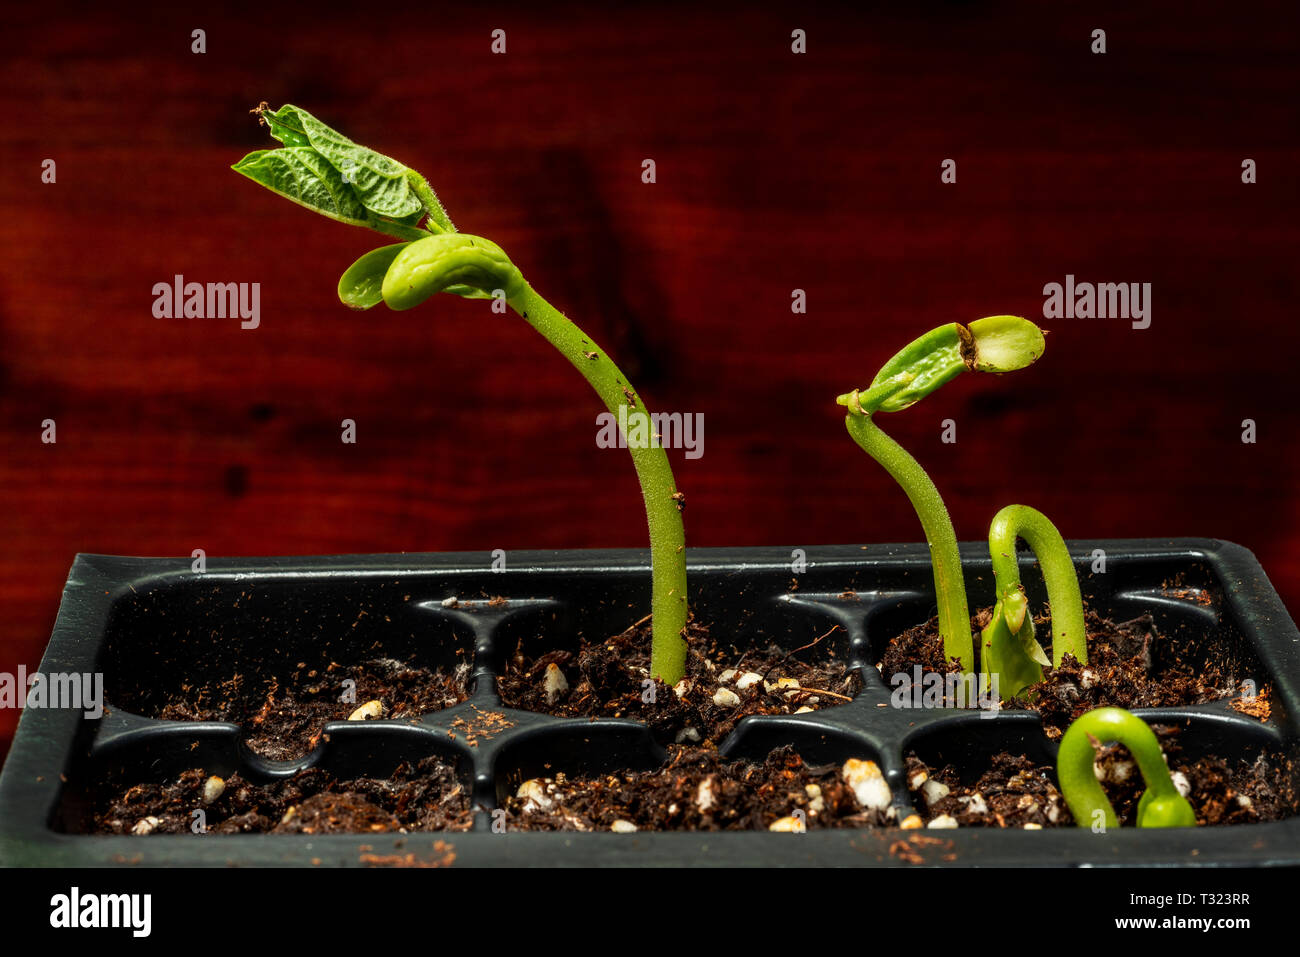 Horizontal shot of bean sprouts in a plastic tray getting ready for spring. - Stock Image